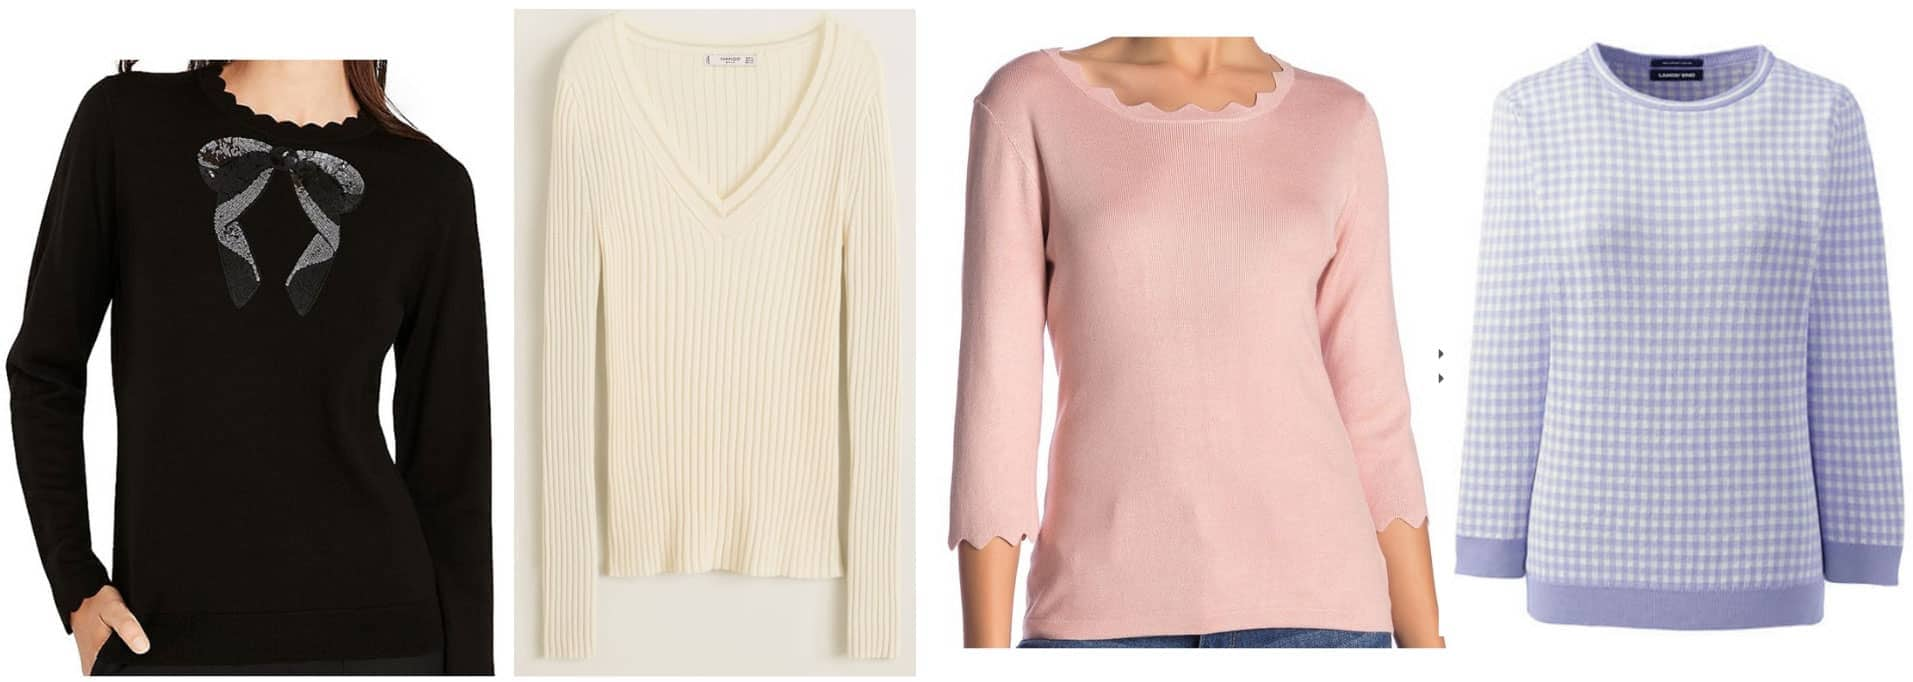 Preppy style guide: Thin sweaters -- black sweater, cream v-neck, scalloped sweater, pastel sweater